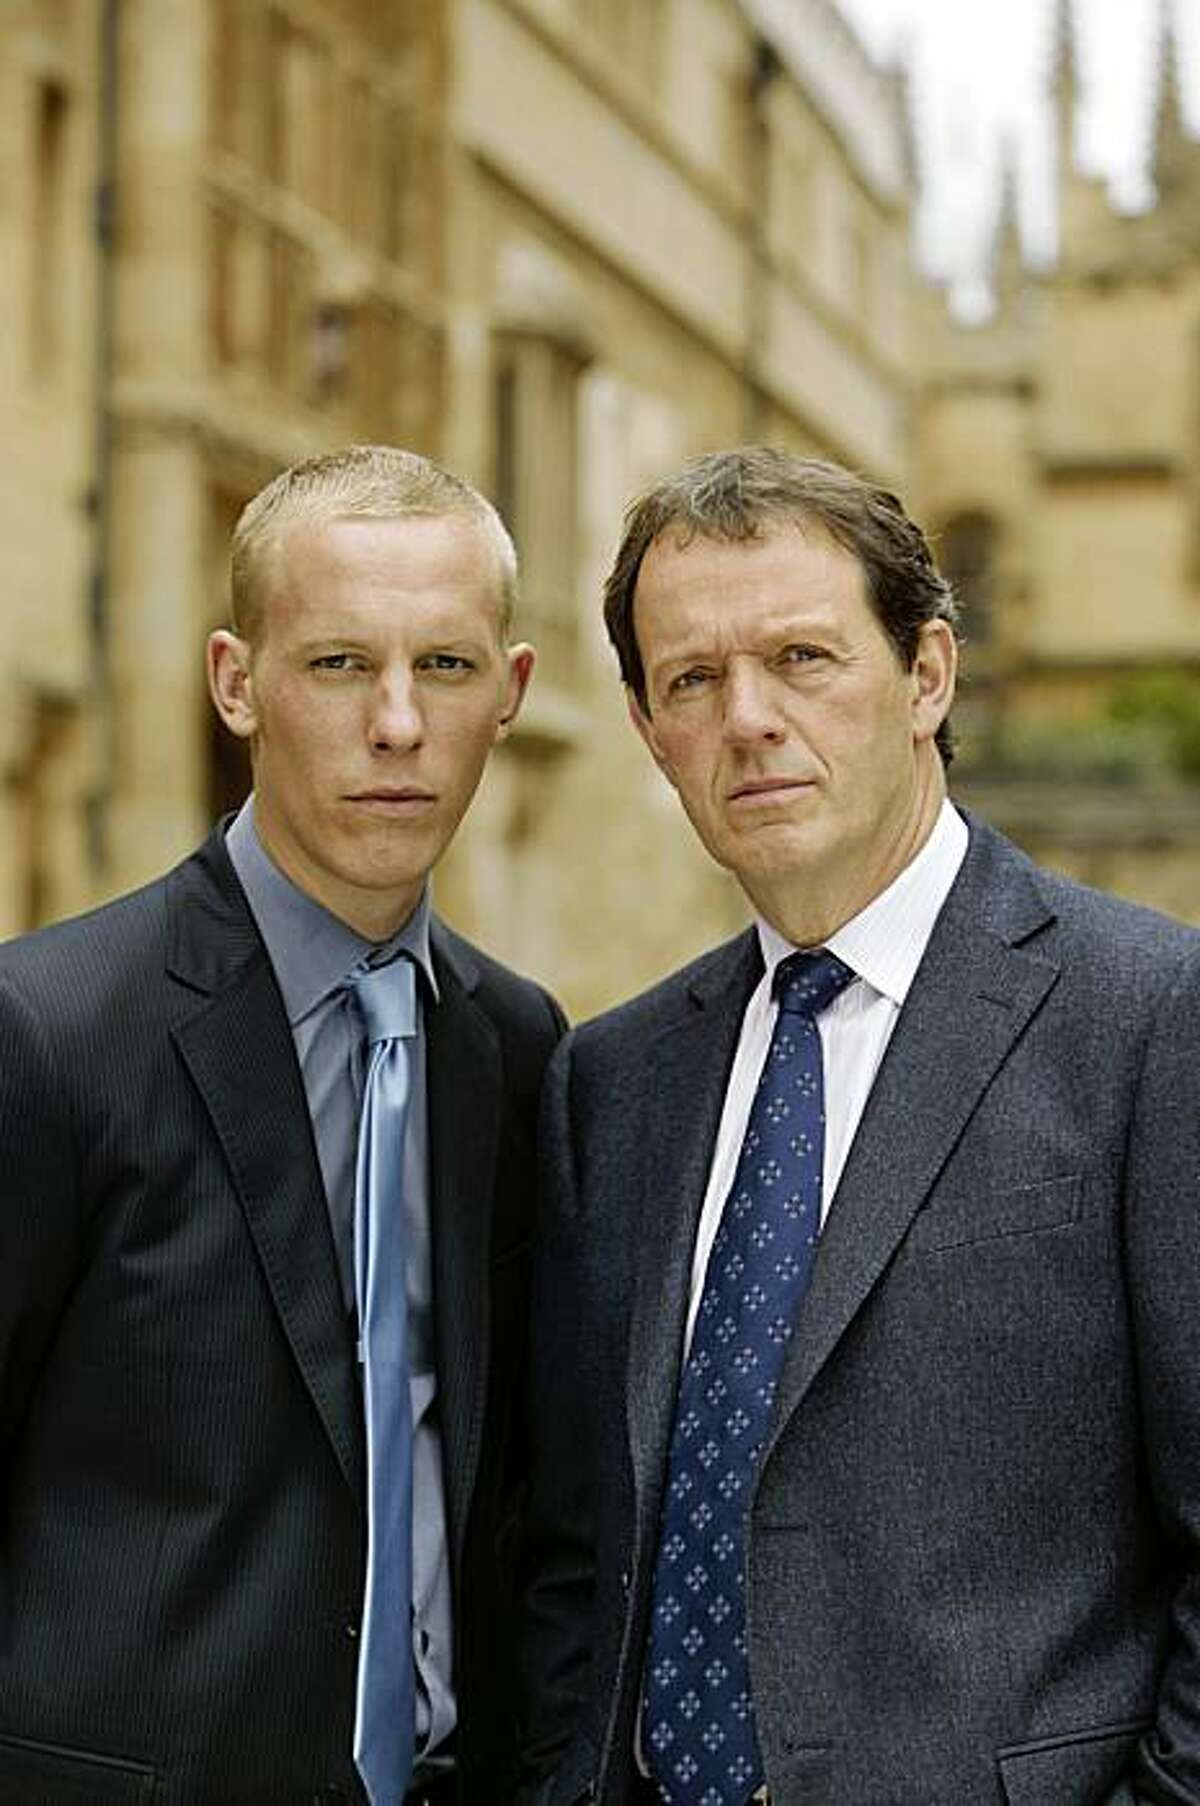 Kevin Whately (right) returns as Inspector Lewis for a second season. The much-loved Oxford policeman is joined once again by Laurence Fox (left) as his young partner DS Hathaway. As the relationship between inspector and sergeant grows and develops, the viewer sees new sides to the inimitable duo.